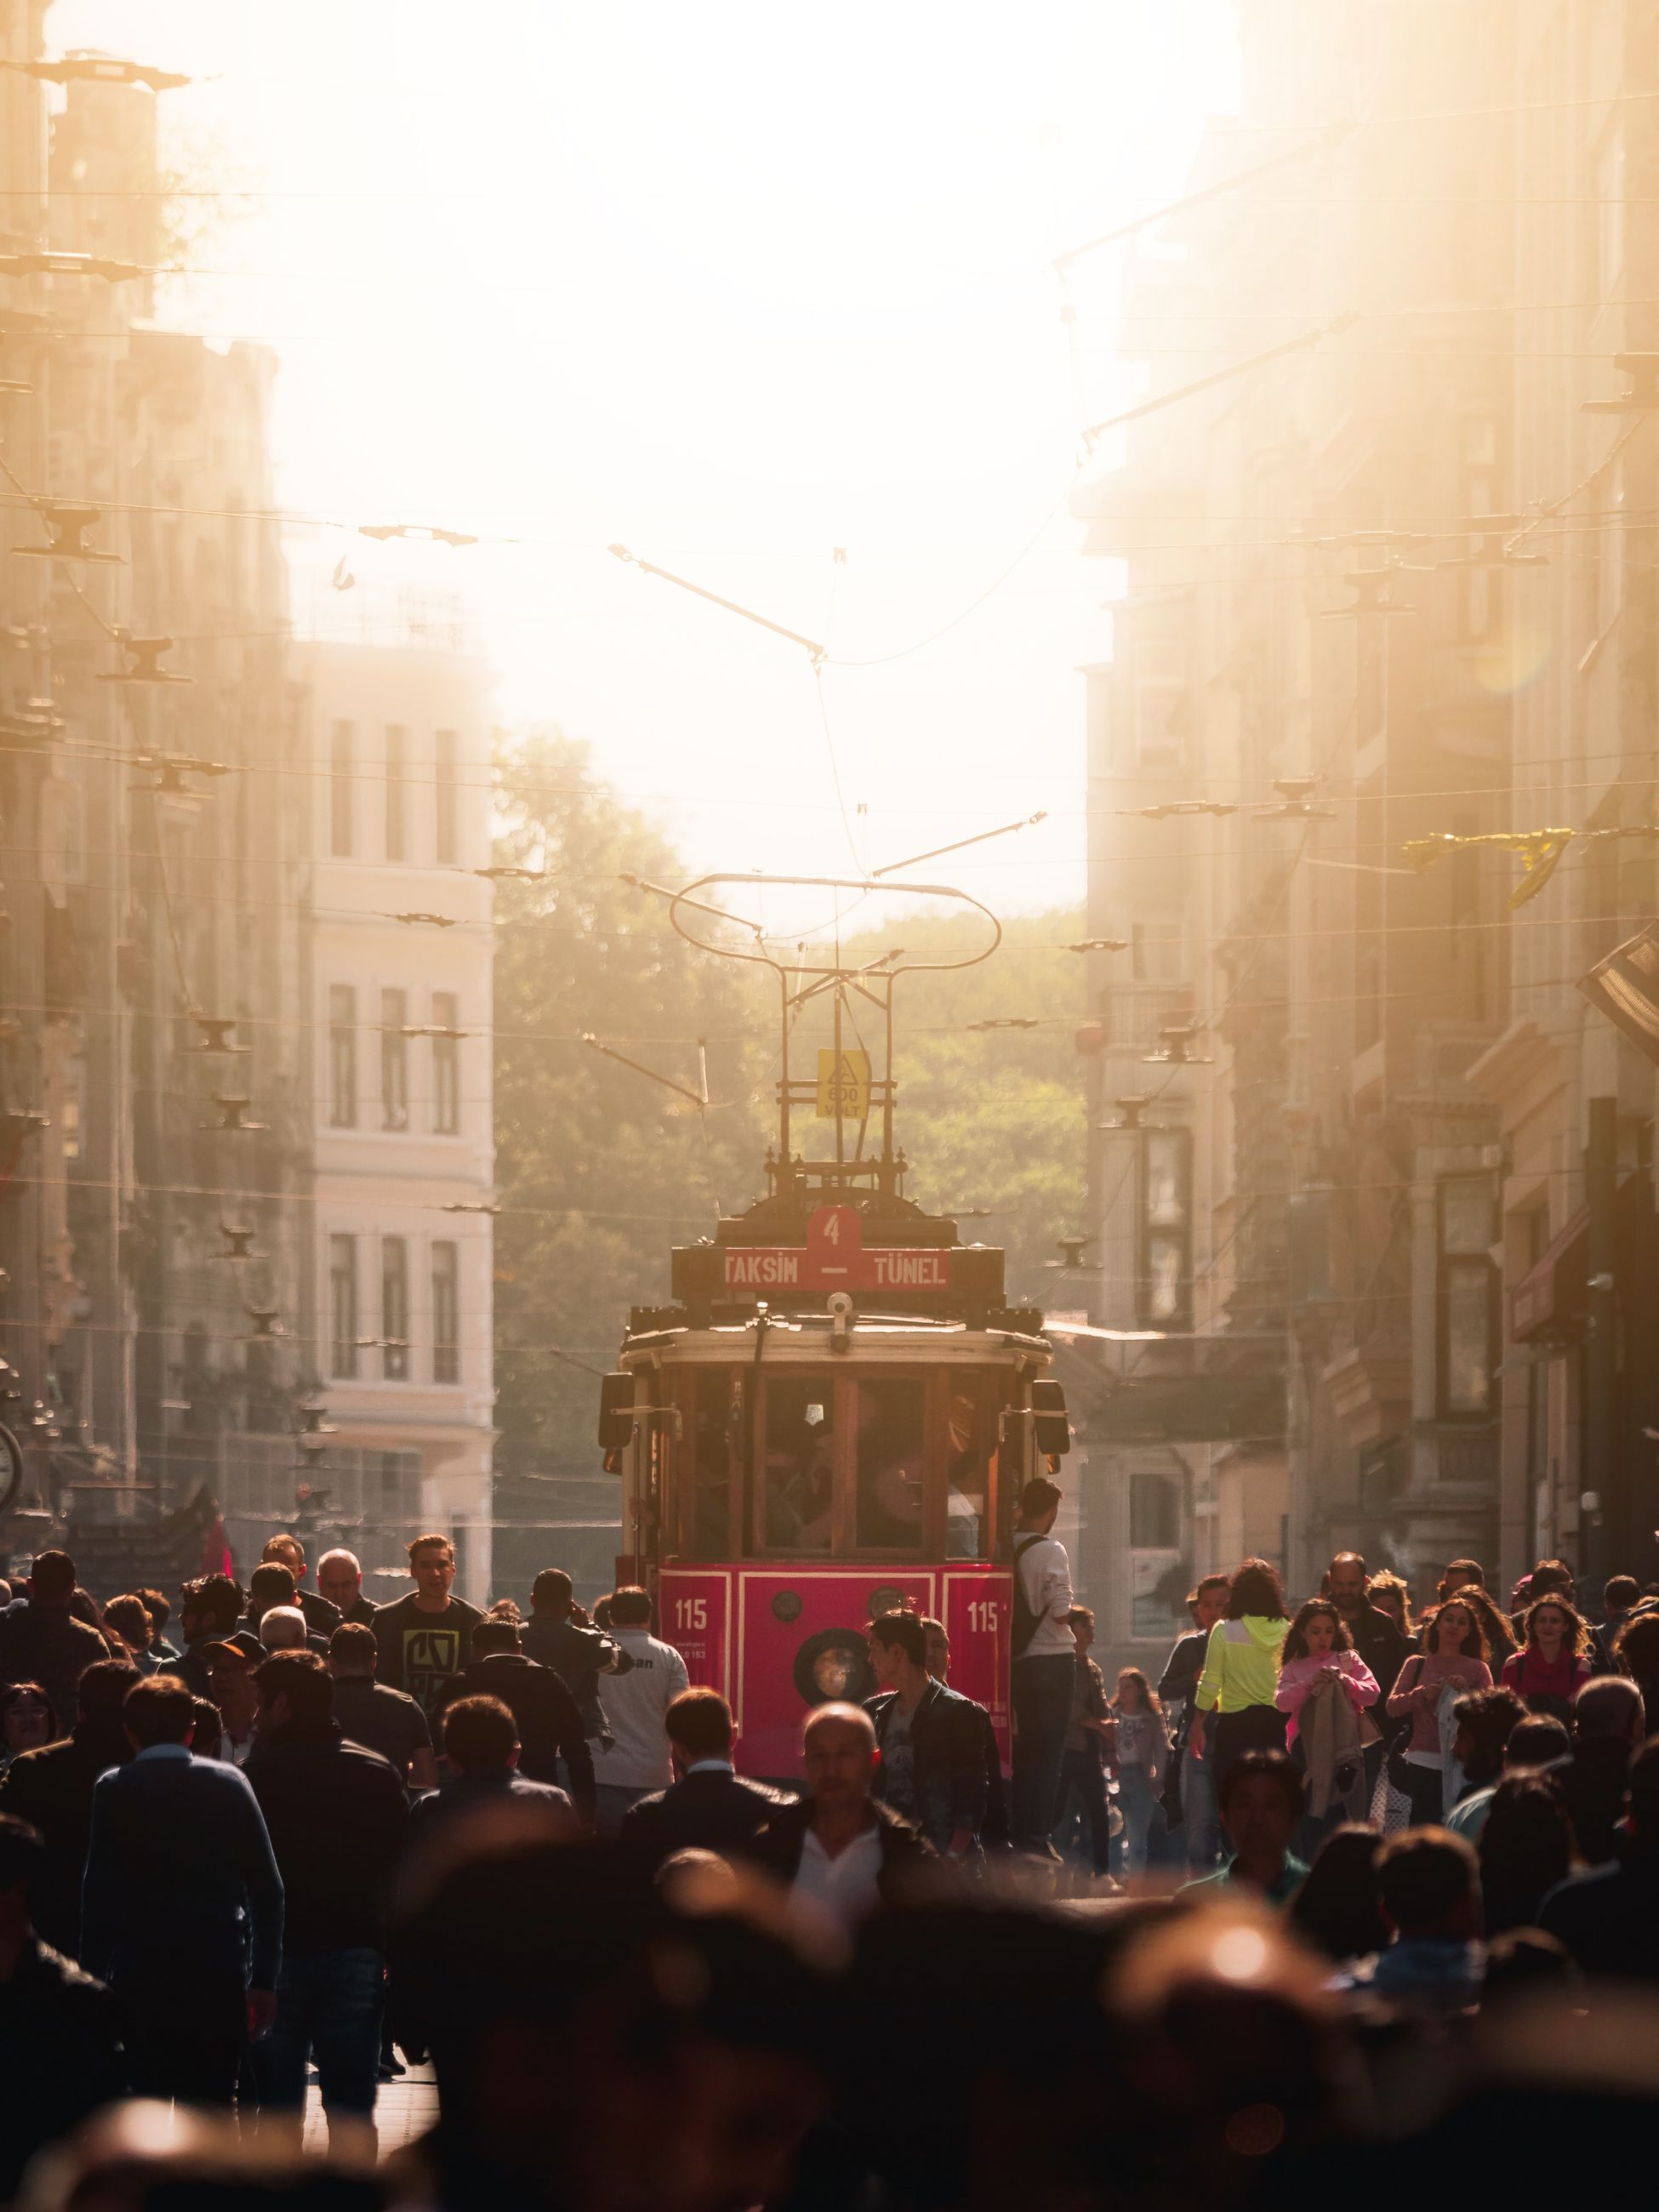 crowd, group of people, city, building exterior, architecture, large group of people, real people, built structure, street, women, adult, city life, men, sky, lifestyles, nature, travel destinations, outdoors, lens flare